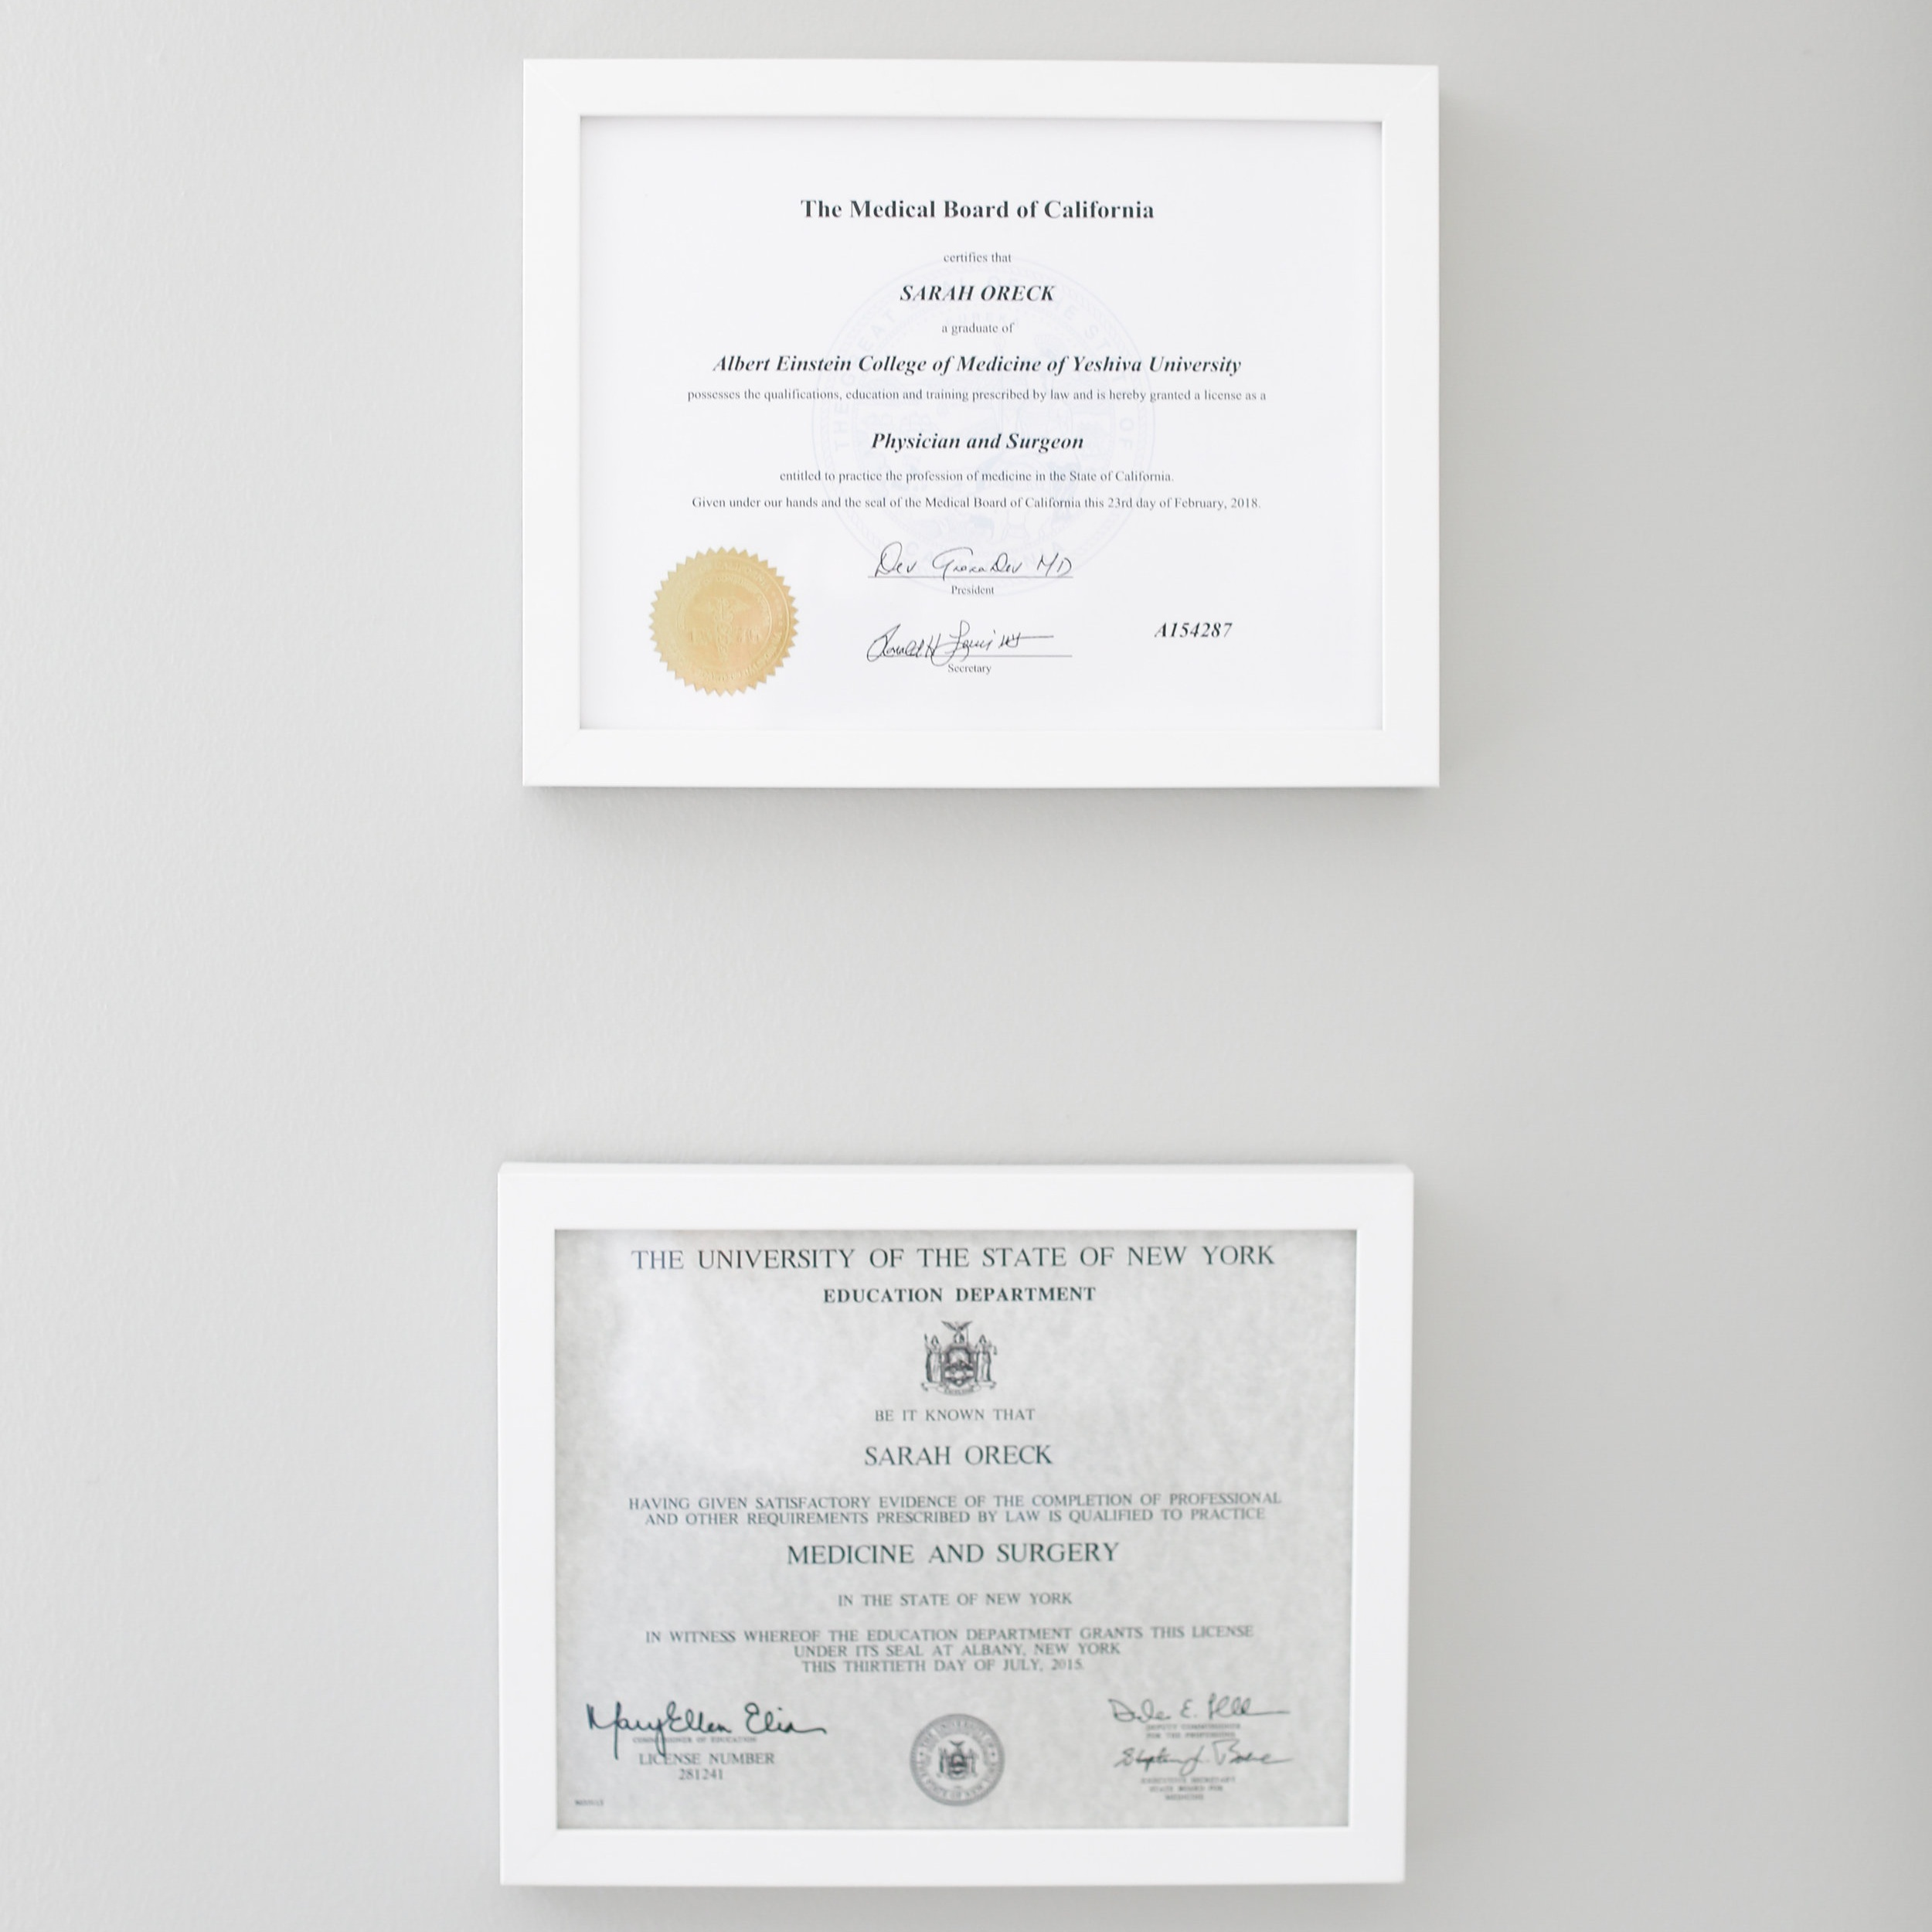 CREDENTIALS - AMERICAN BOARD OF PSYCHIATRY AND NEUROLOGY CERTIFIED PHYSICIANCALIFORNIA STATE MEDICAL LICENSENEW YORK STATE MEDICAL LICENSEBUPRENORPHINE CERTIFIED PROVIDERMINDFULNESS-BASED STRESS REDUCTION TRAINEDEYE MOVEMENT DESENSITIZATION & REPROCESSING THERAPY TRAINED